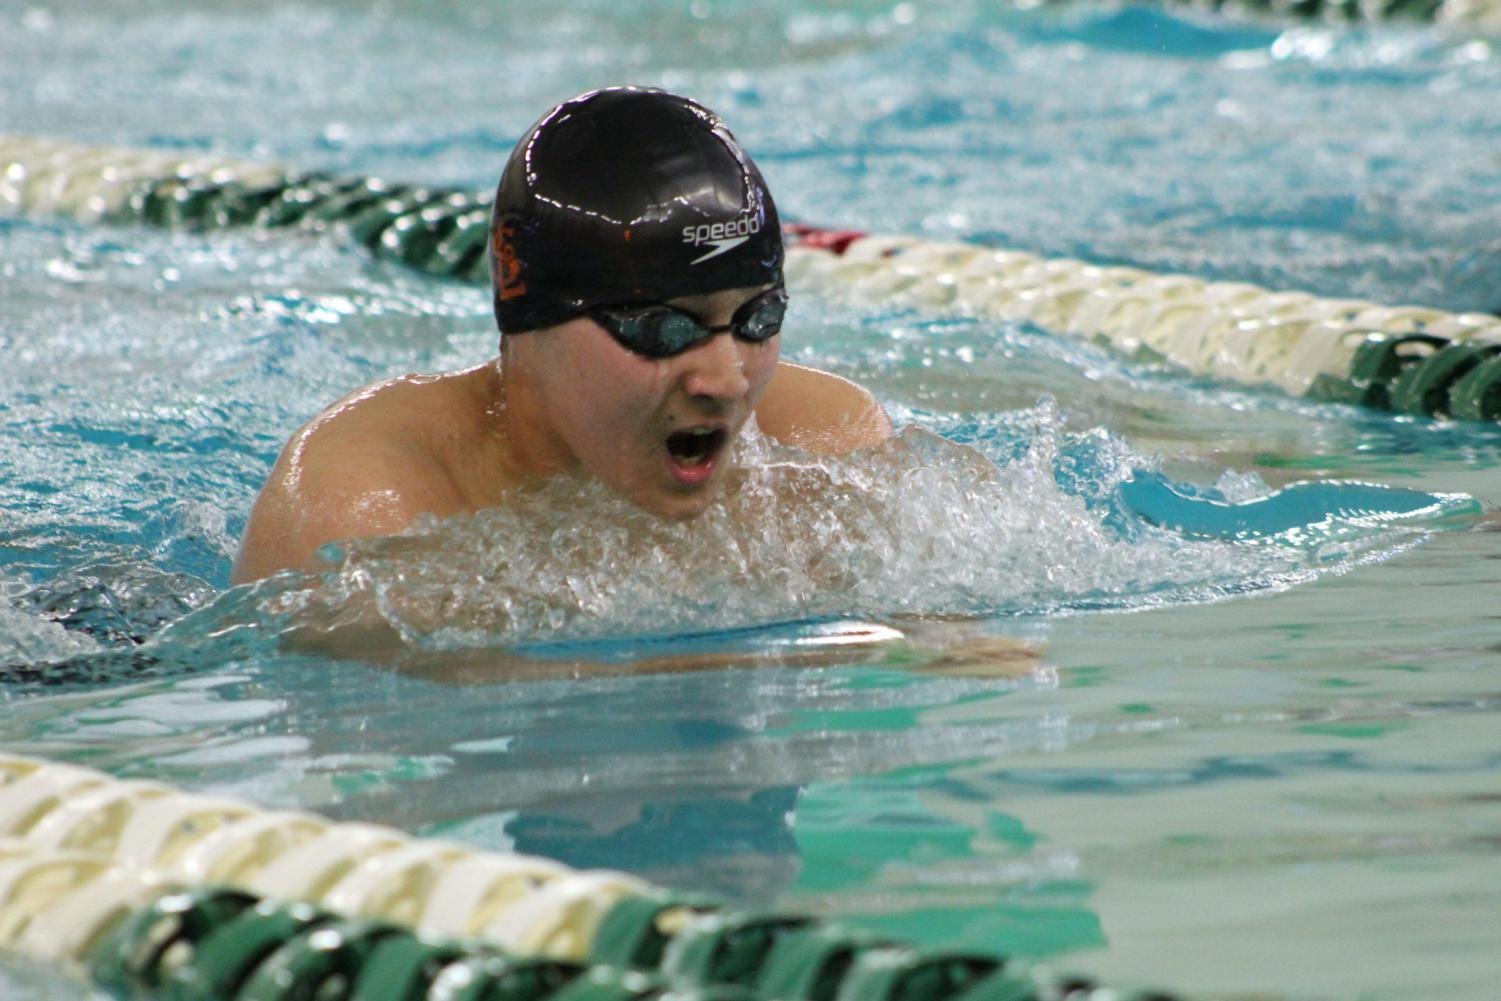 Freshman+Hiro+Mckee+breaststrokes.+The+Section+meet+is+qualifying+meet+for+the+State+meet+March+1+and+2+at+Jean+K+Freeman+Aquatic+Center%2C+U+of+M.